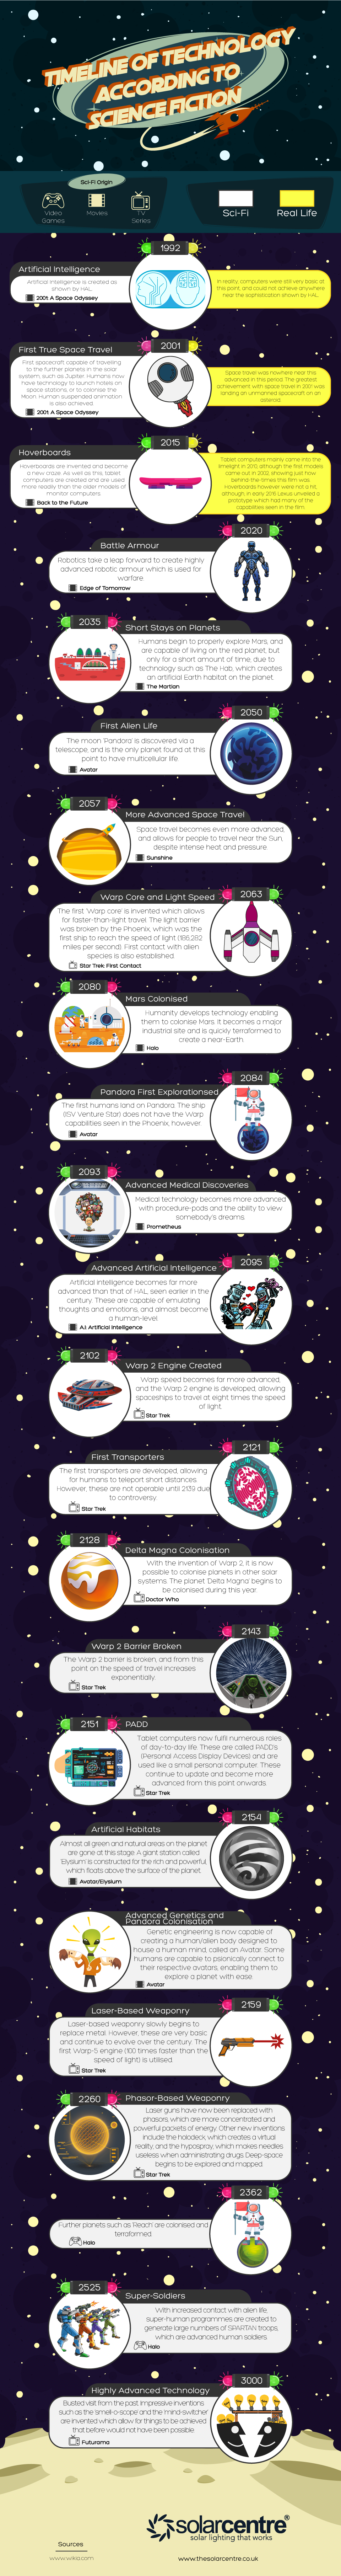 How Technology Will Change According to Science Fiction #Infographic